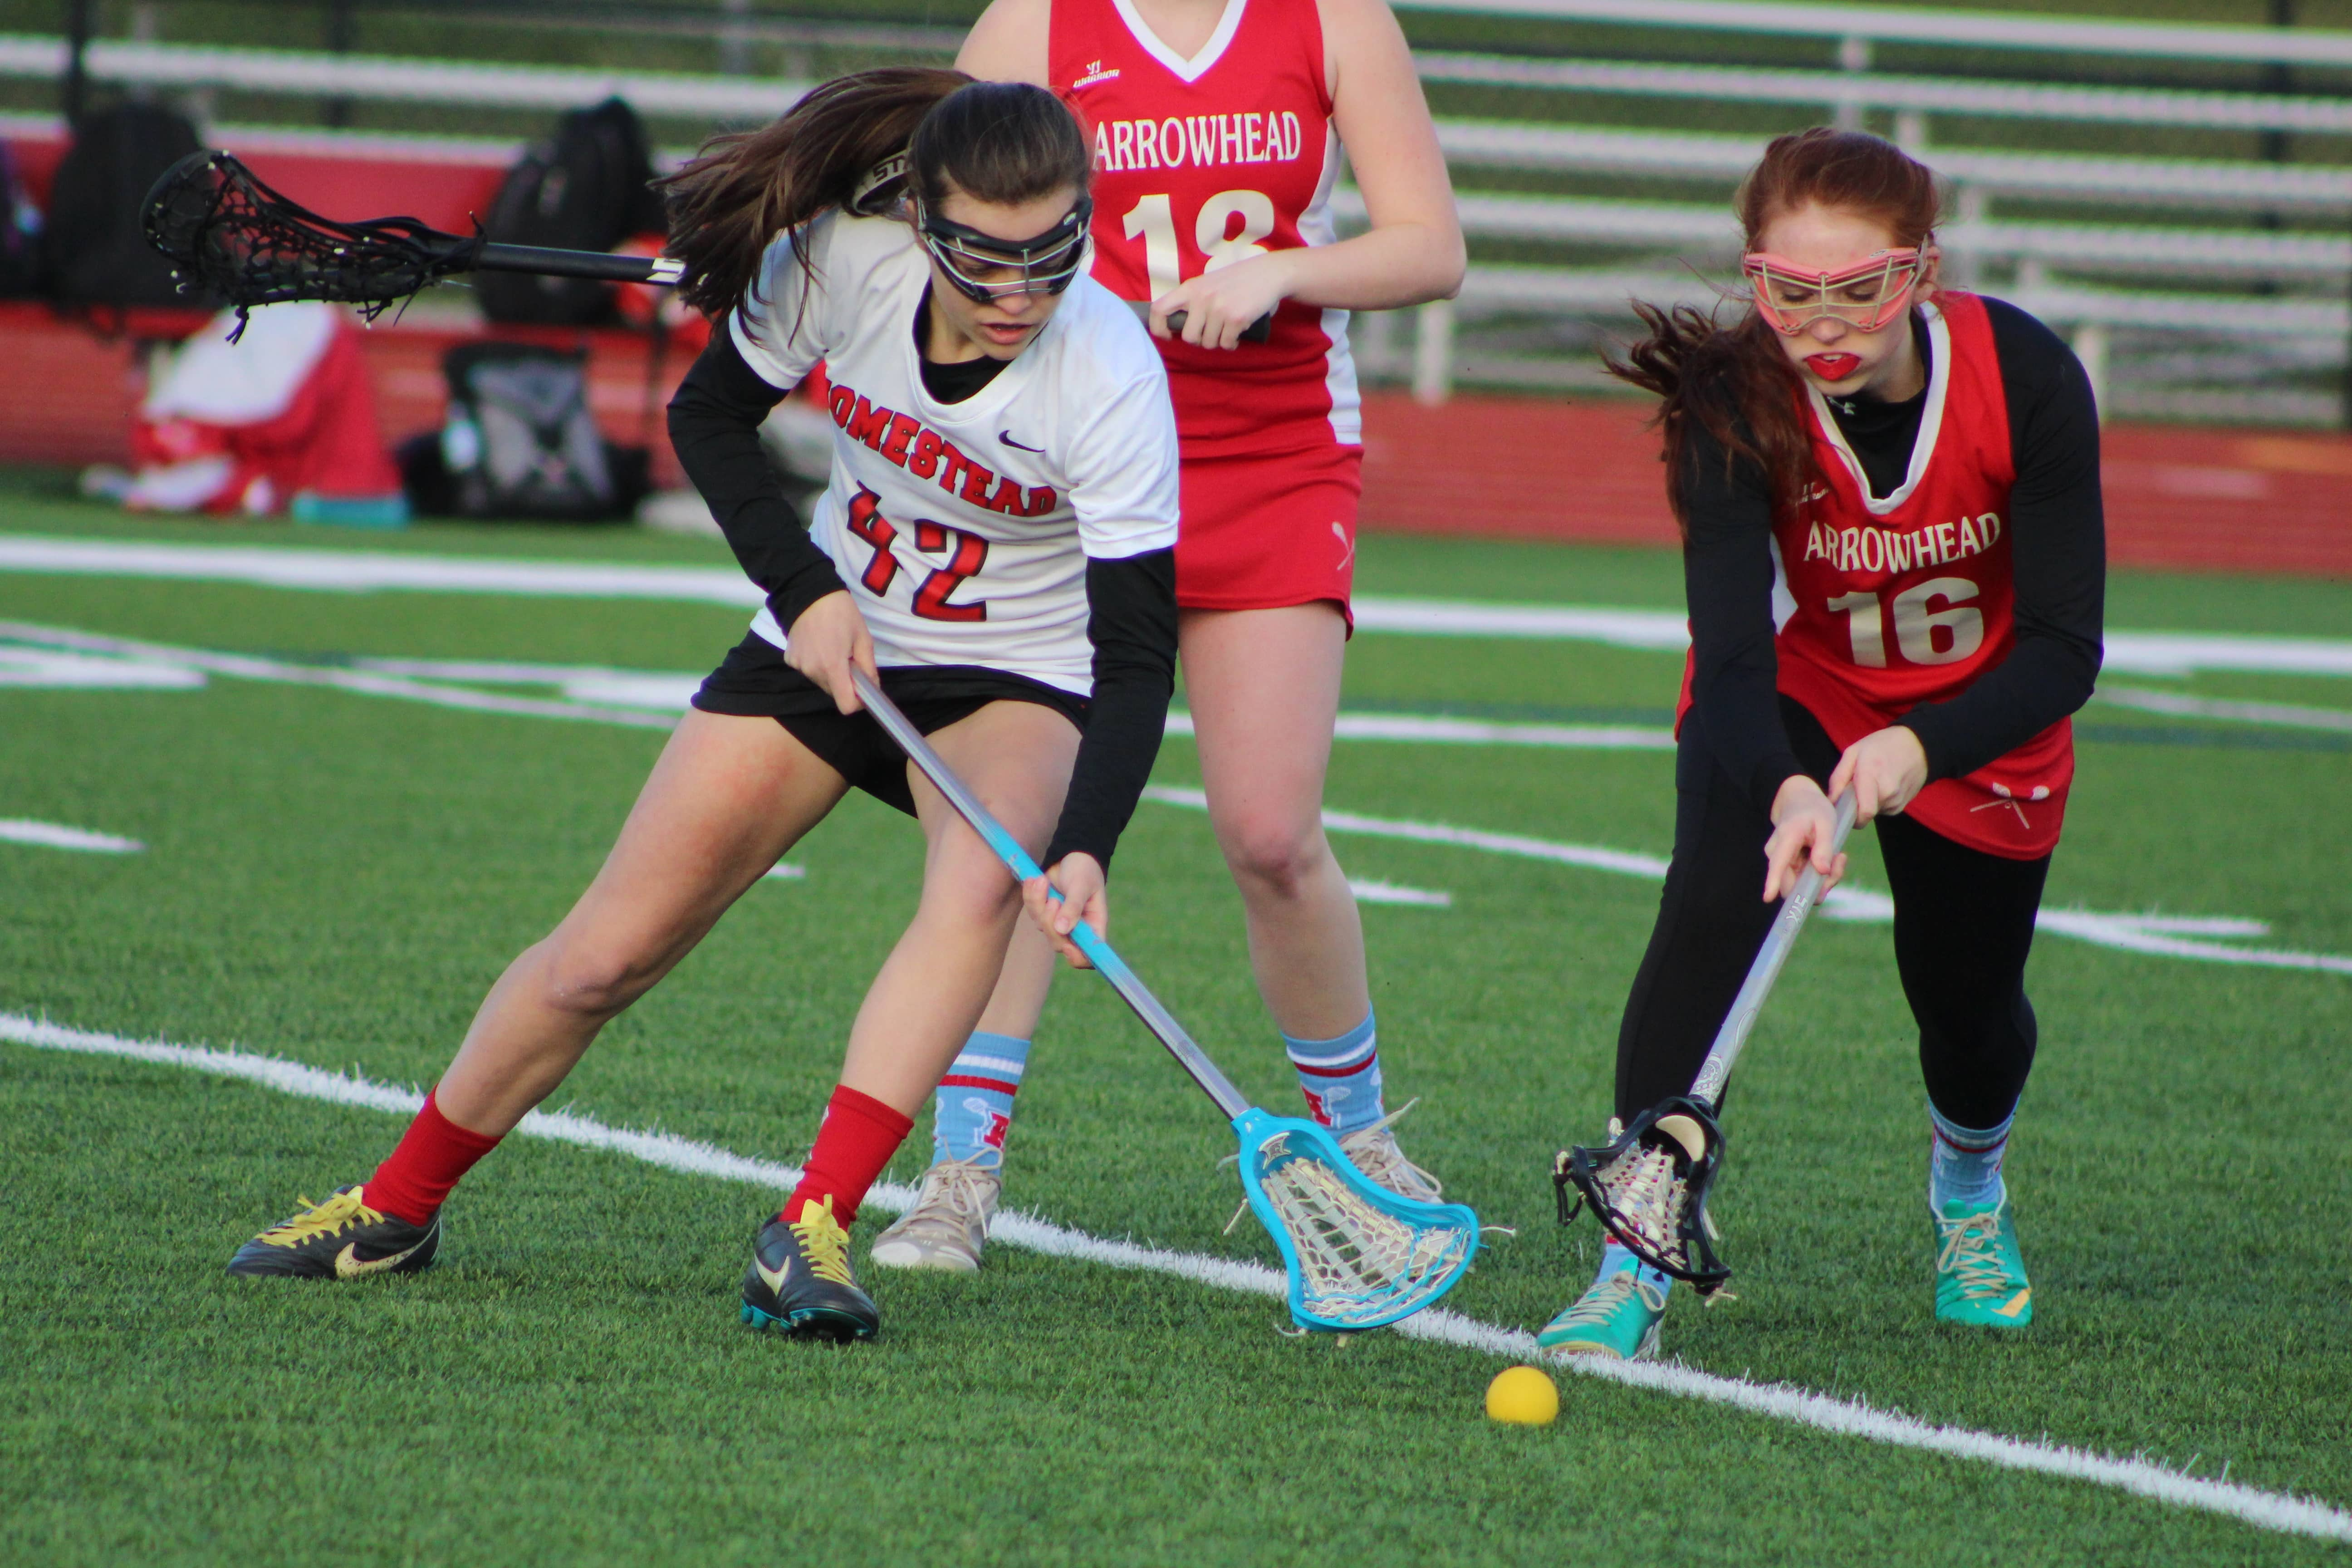 Lindsey Schimpf, sophomore, attempts to gain possession of the ball.